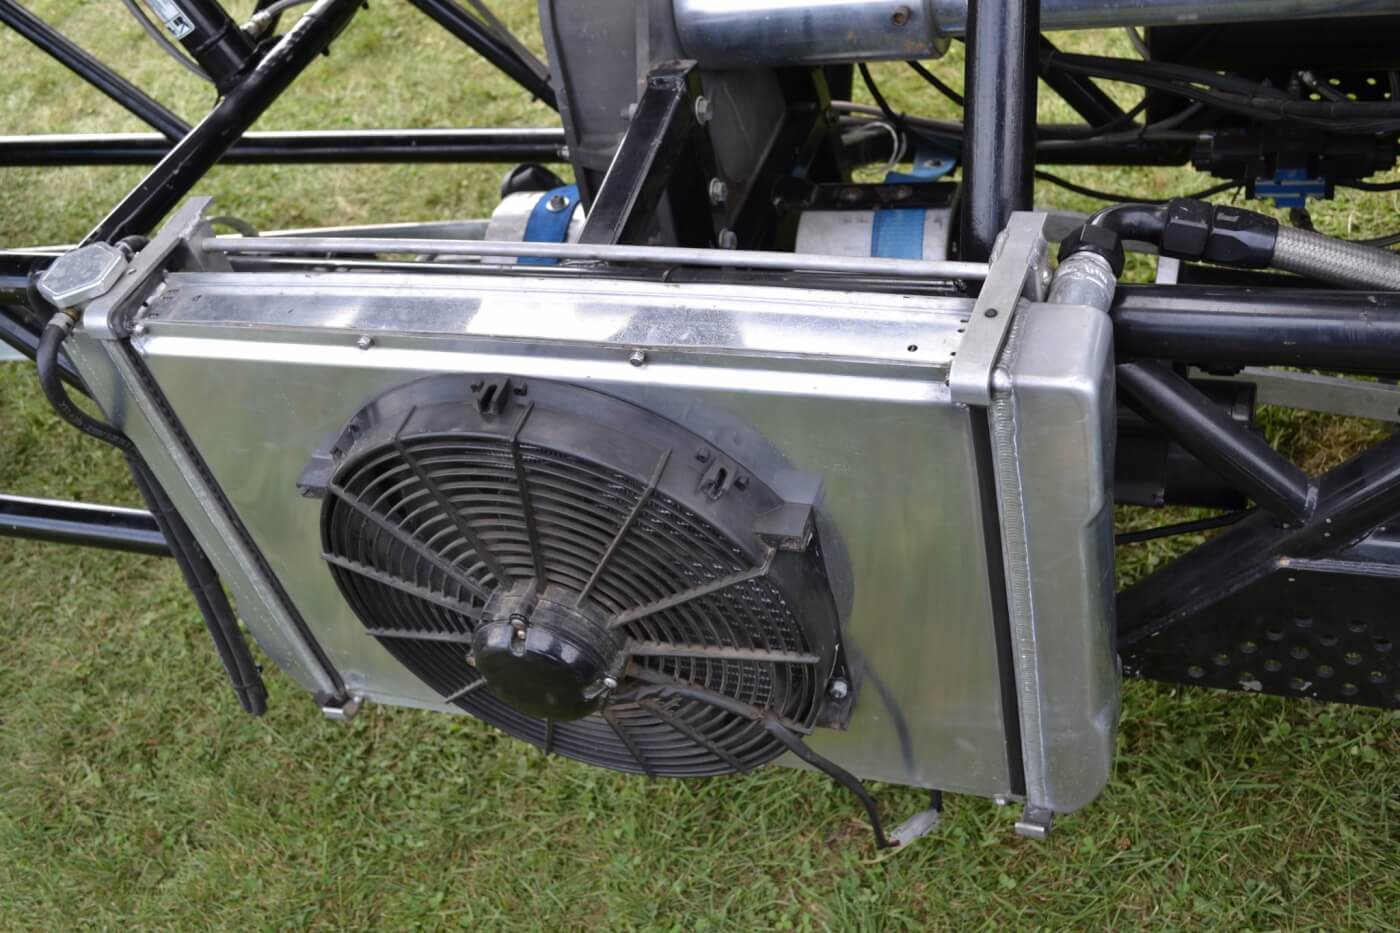 Although the block has been filled, Kyle still used a cooling system to circulate water through the heads. Since then, he's found the engine to be reliable without it, so the radiator has now been deleted.